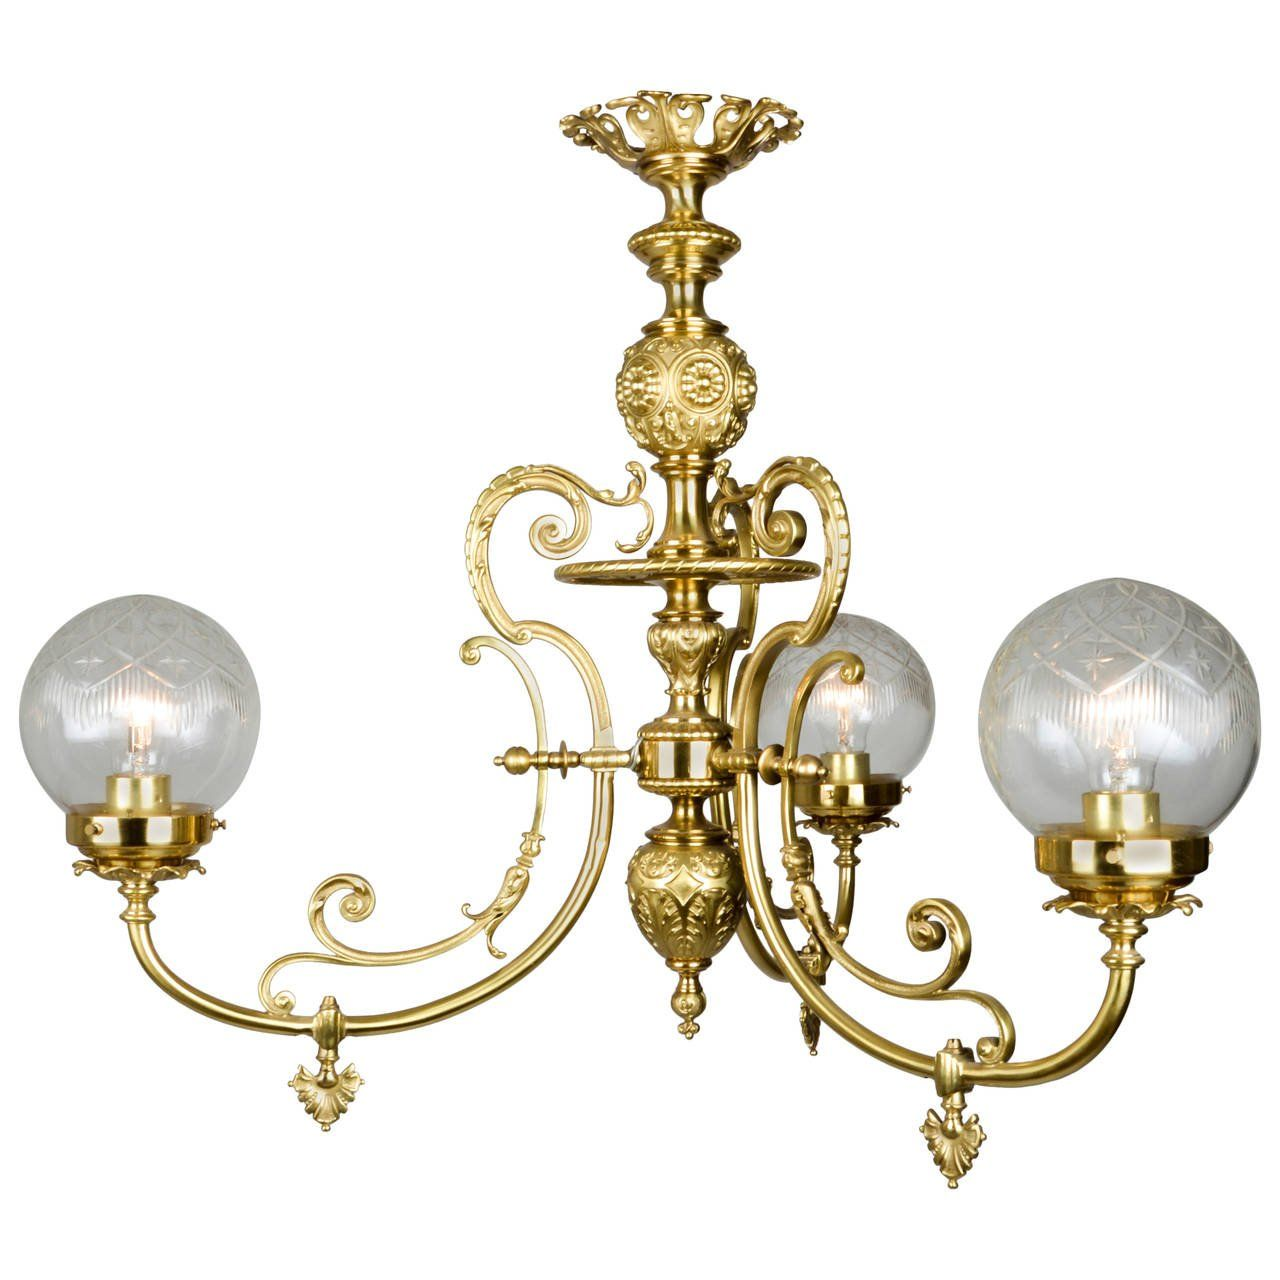 Late 19th century neoclassical brass gaslight chandelier late 19th century neoclassical brass gaslight chandelier arubaitofo Images